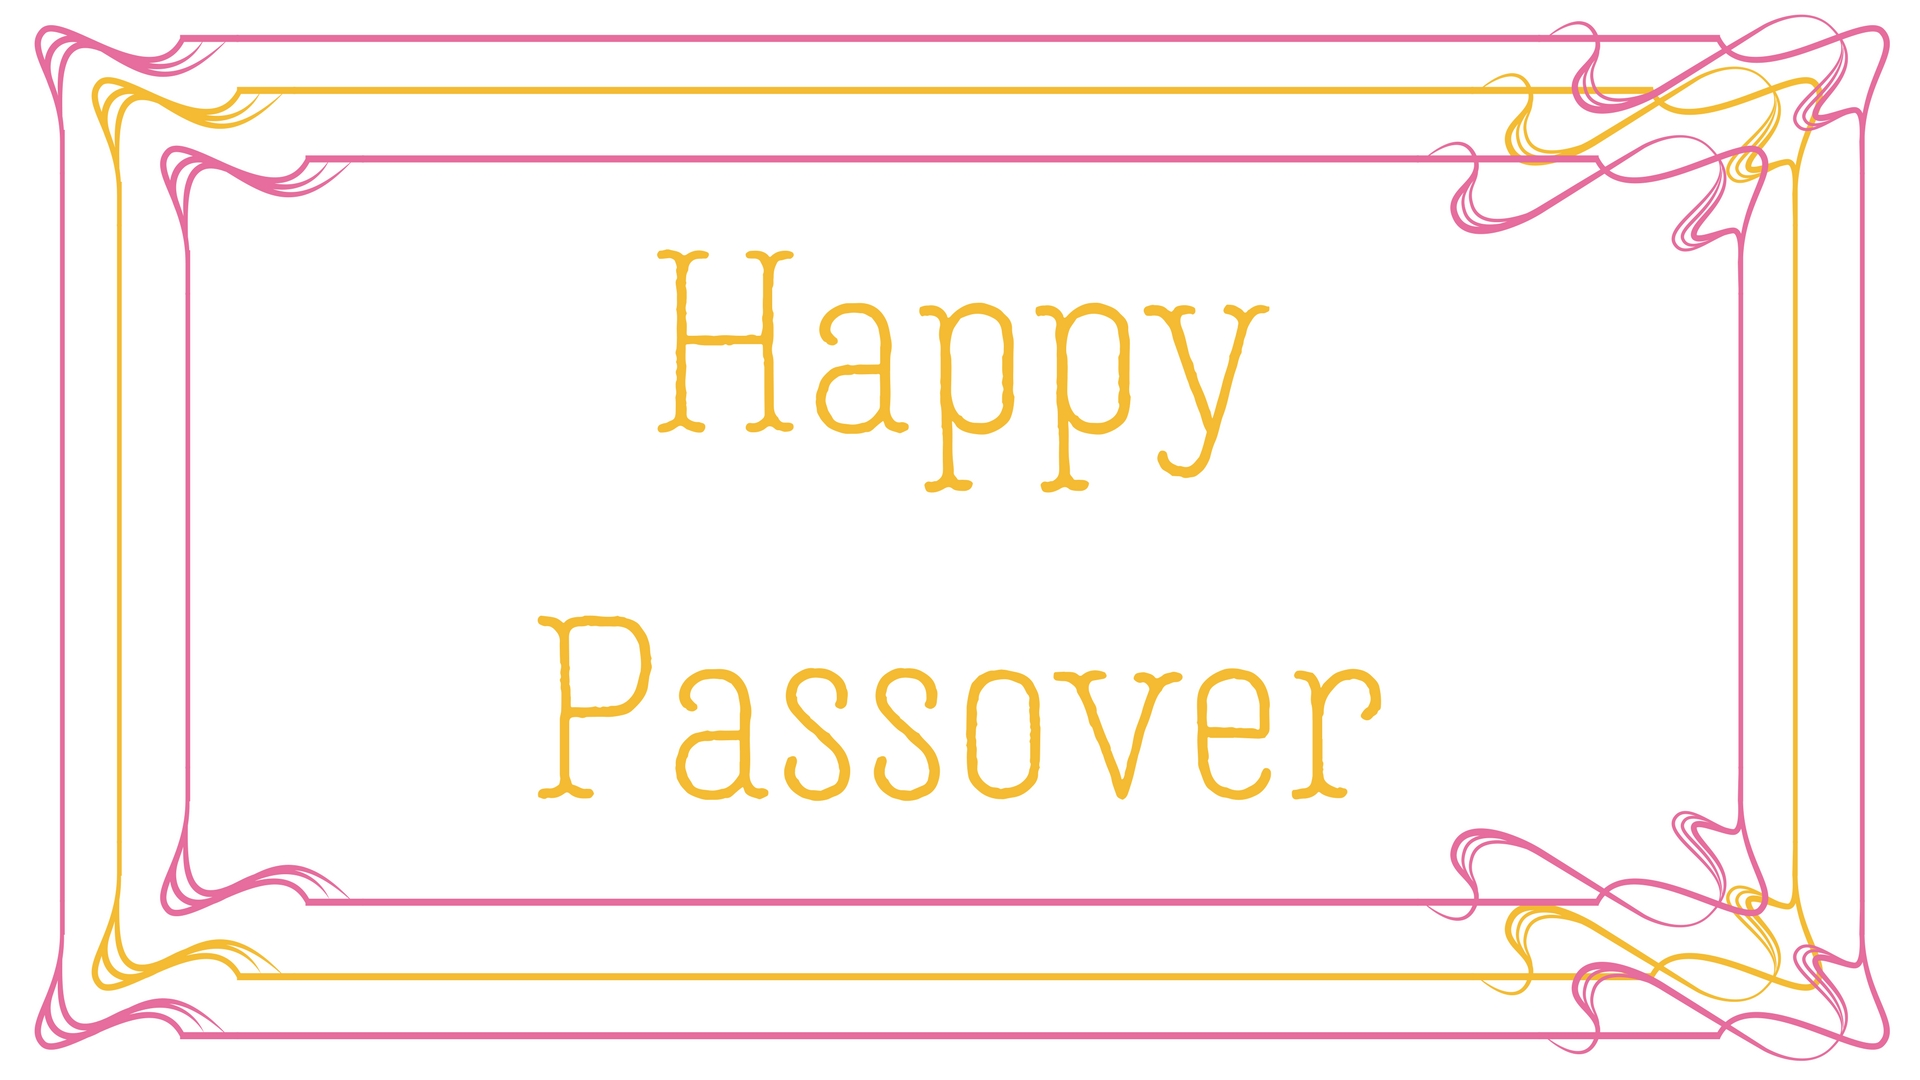 Happy Passover Rectangle Frame Greeting Card Postcard 15